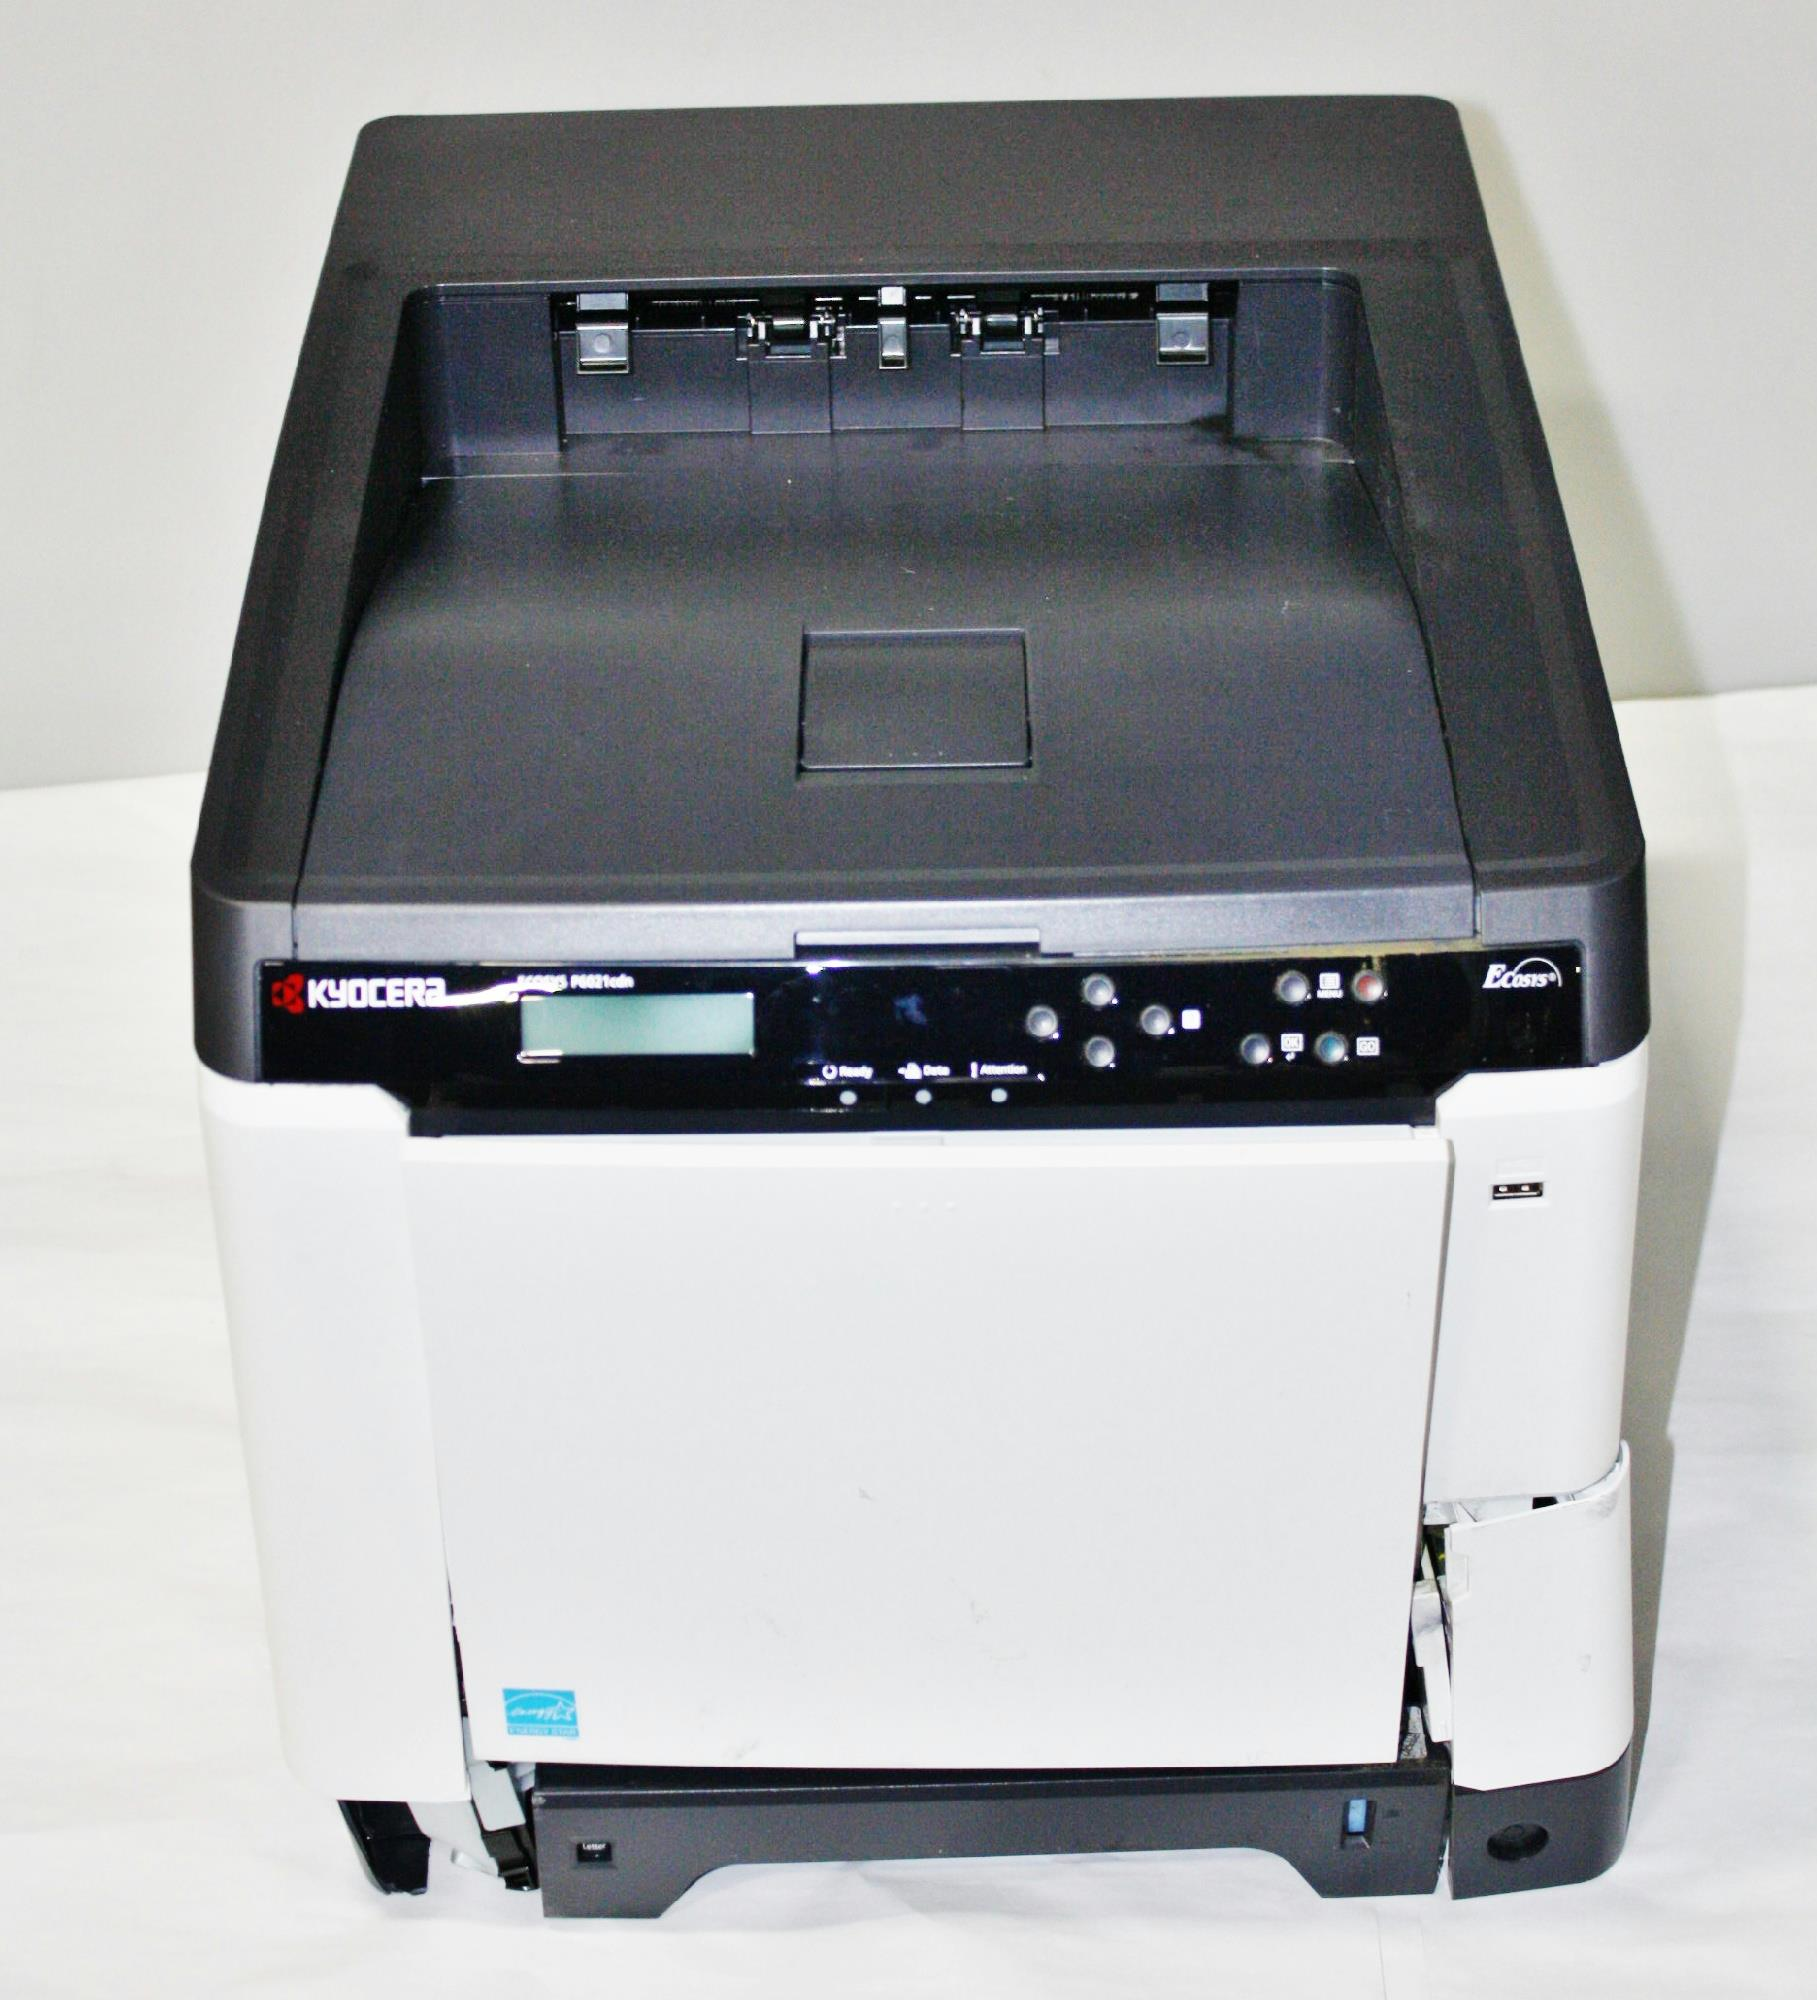 kyocera ecosys p6021cdn printer 1102ps2us0 for parts. Black Bedroom Furniture Sets. Home Design Ideas